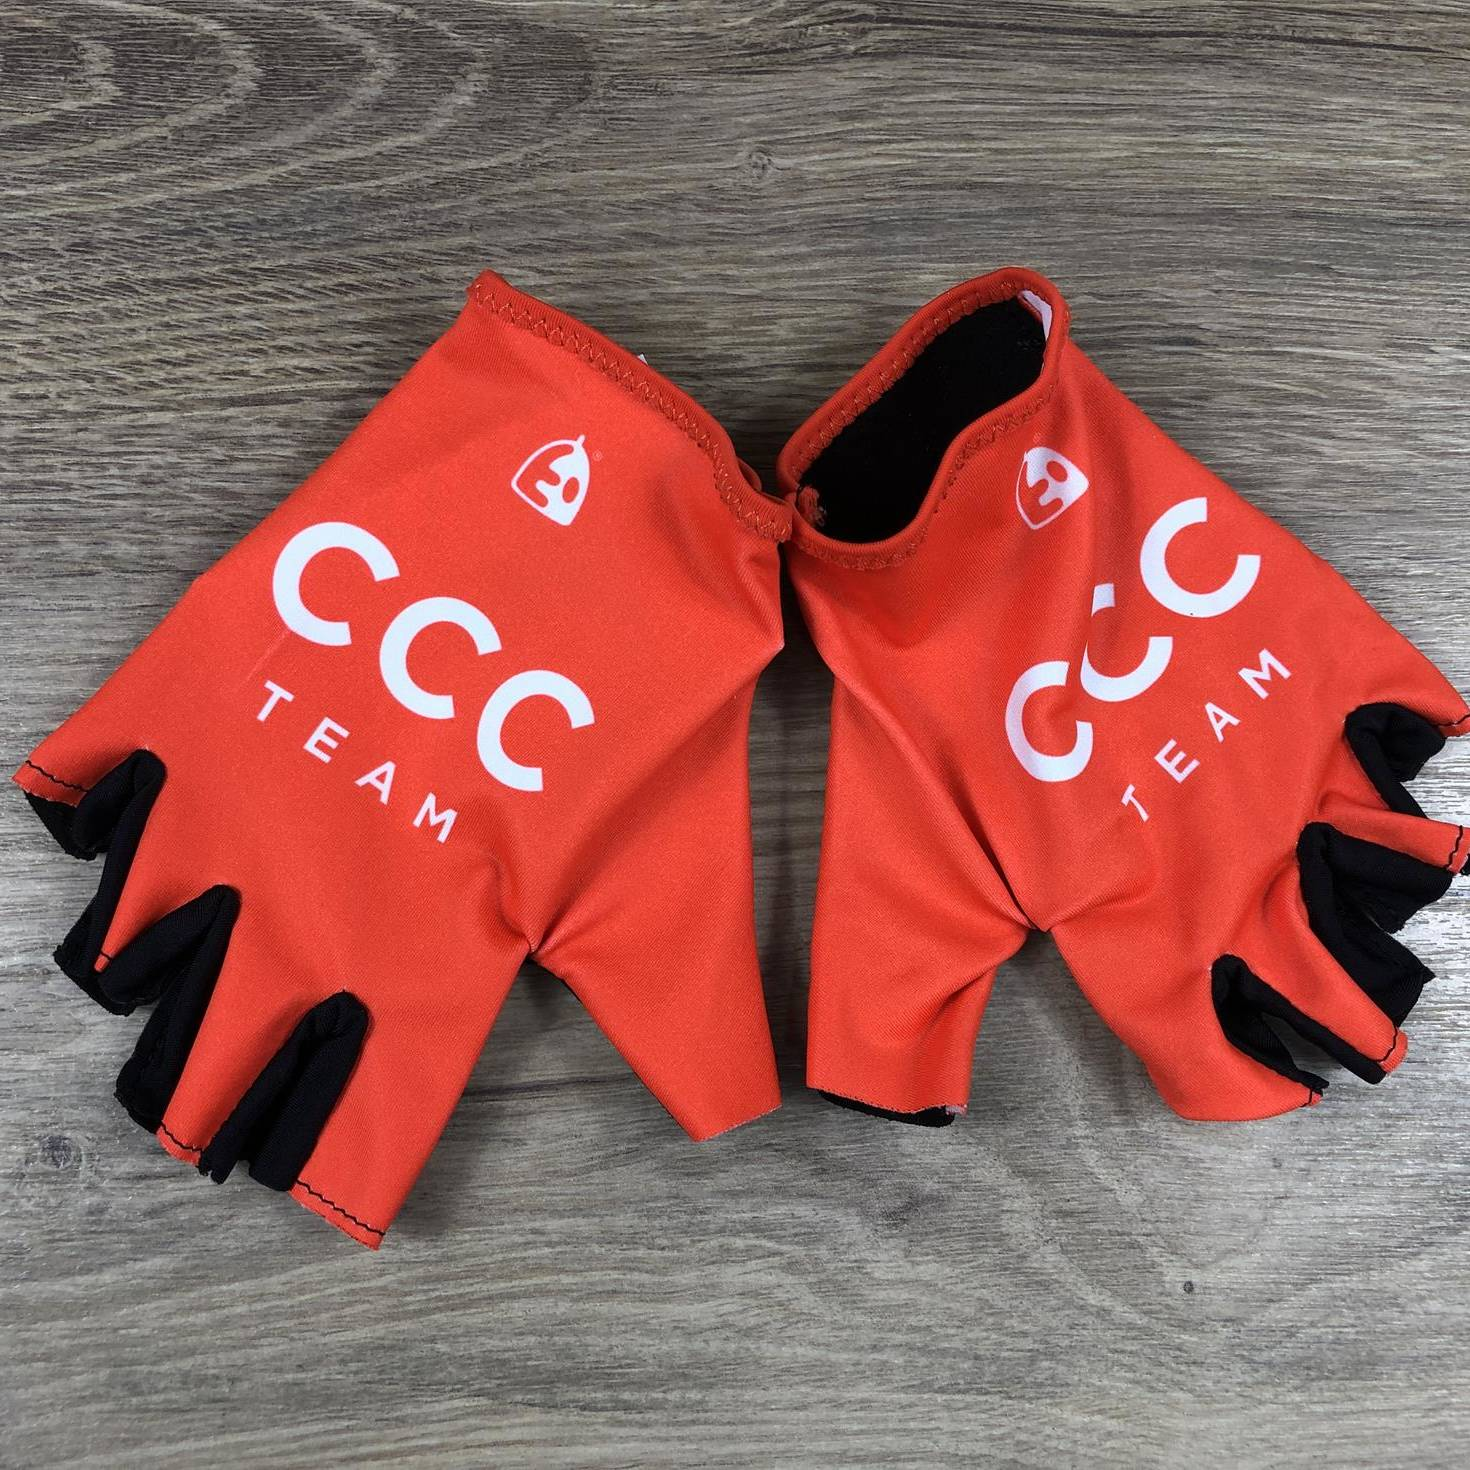 Cycling Gloves - CCC Team 00003592 (2)